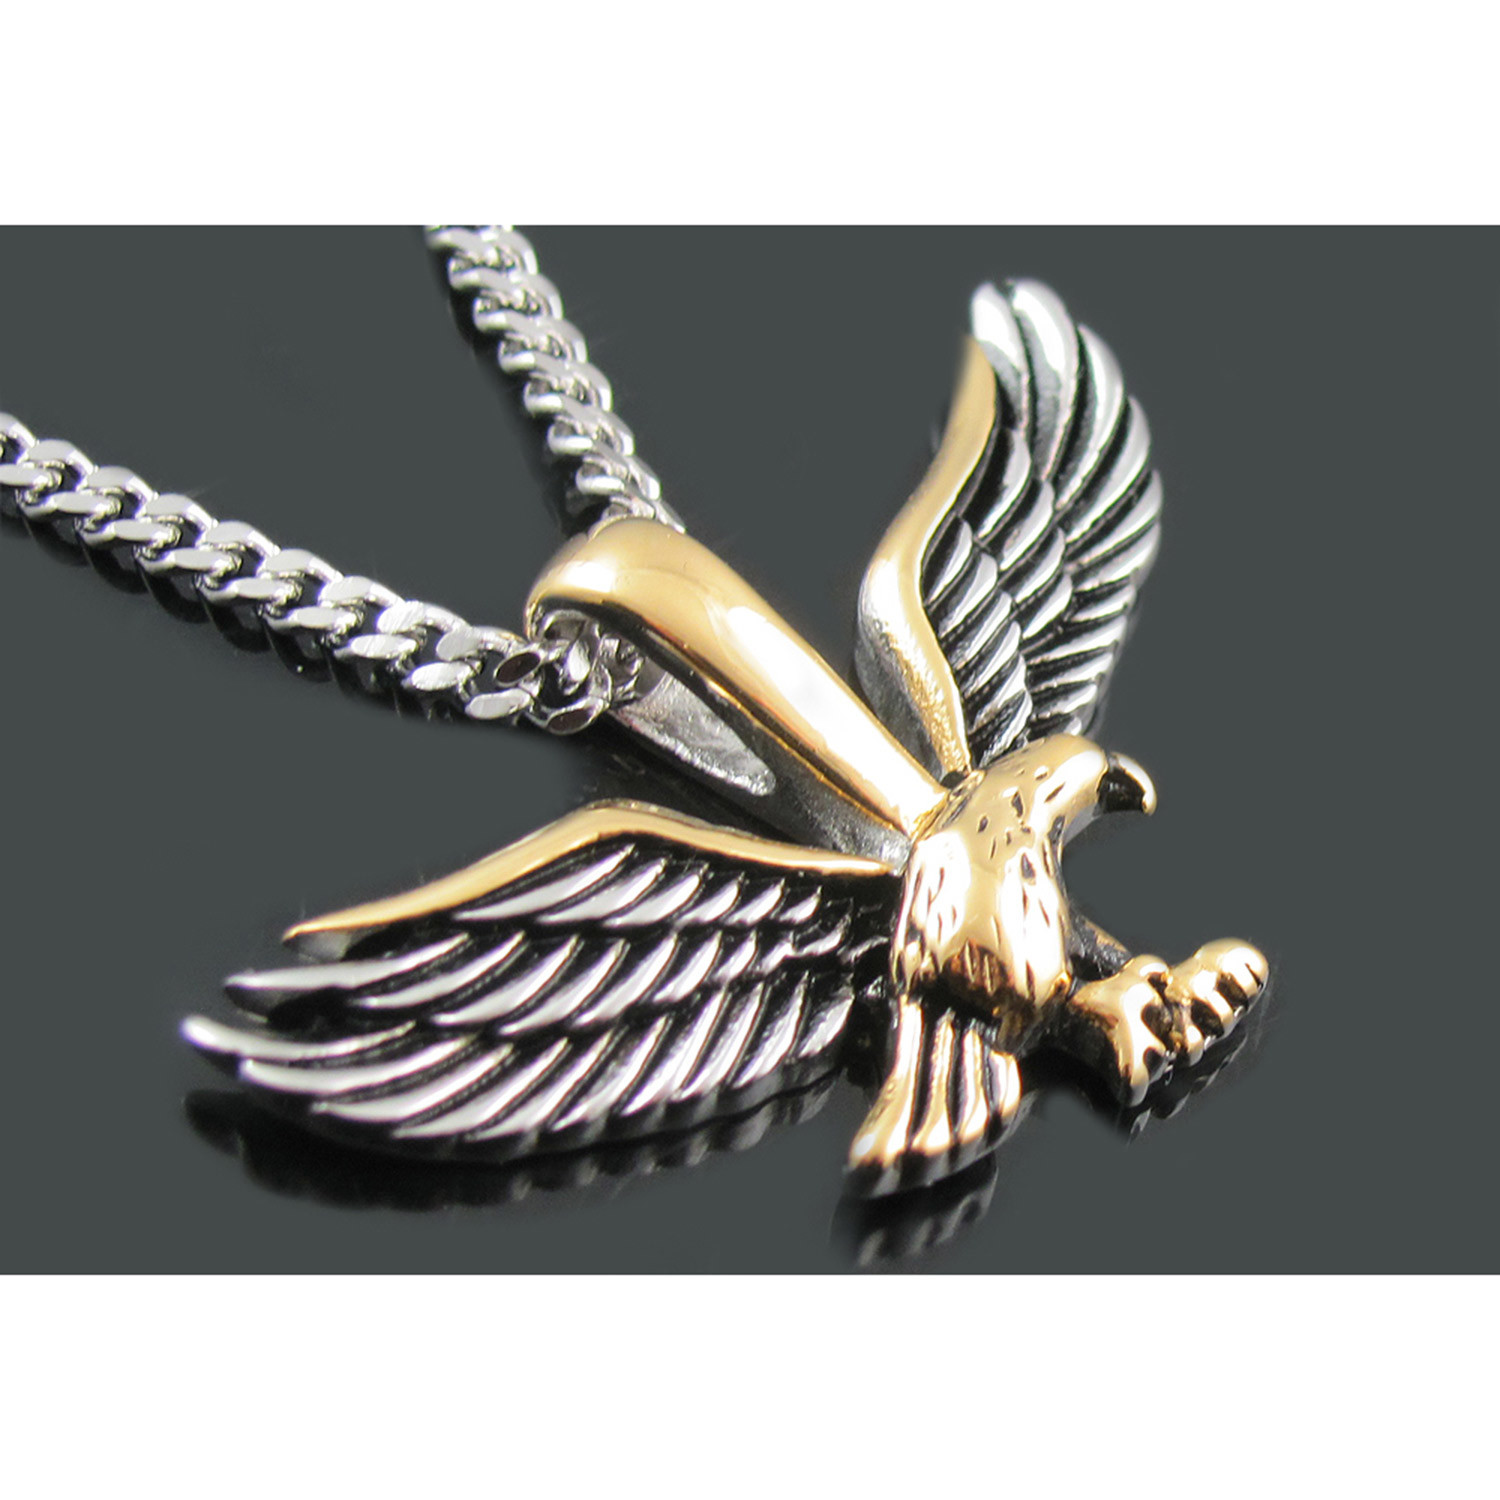 pendant eagle loading silver necklace in charm flying animals sterling zoom